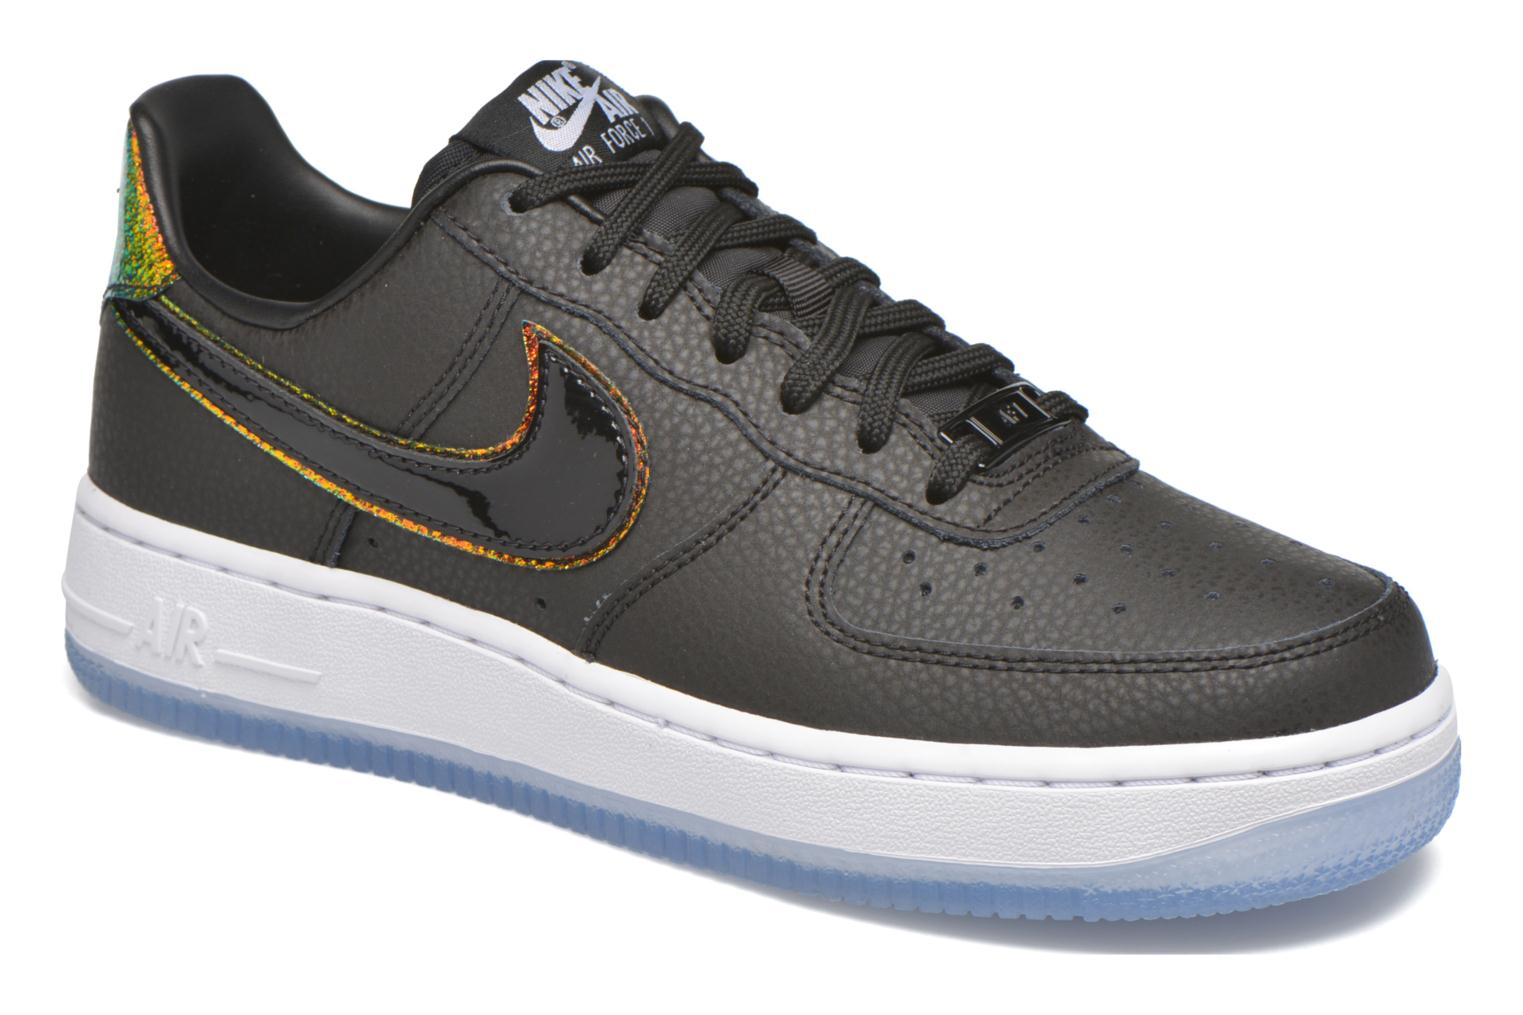 Sneakers Wms Air Force 1 '07 Prm by Nike